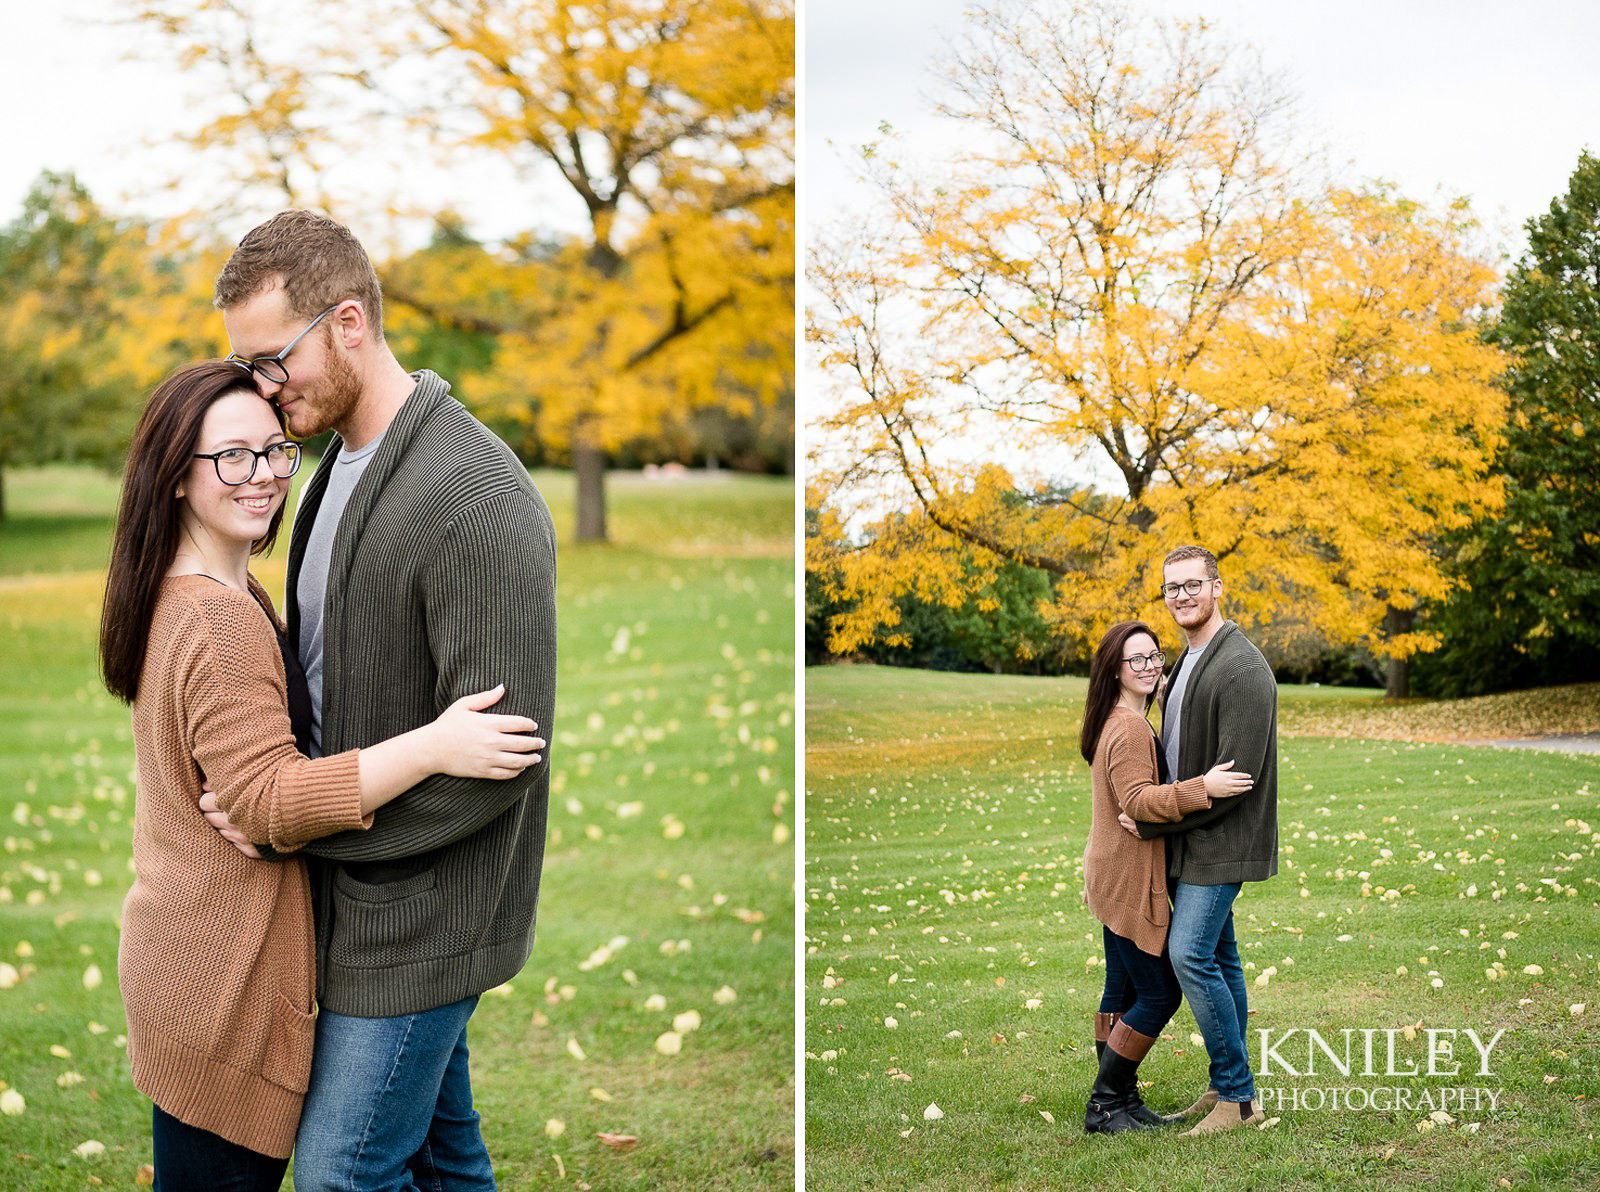 Highland Park Fall Engagement Session - Rochester NY - collage 2.jpg